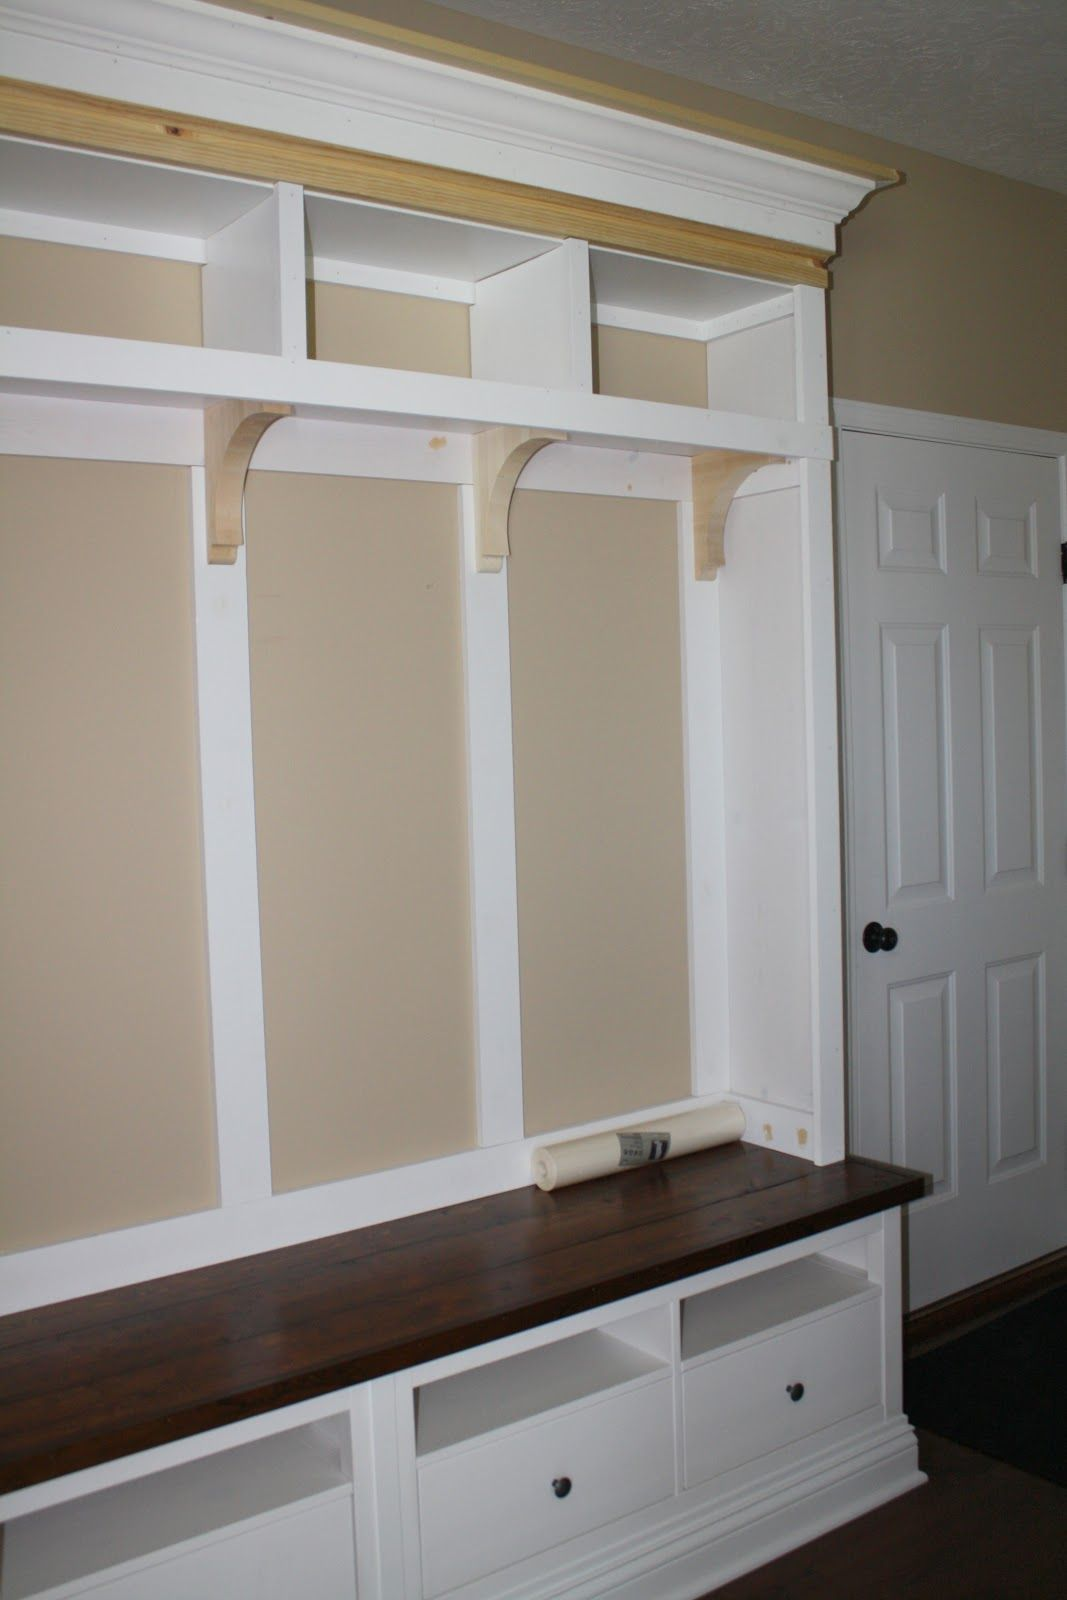 Mudroom Storage Units : Mudroom storage reveal our unit is